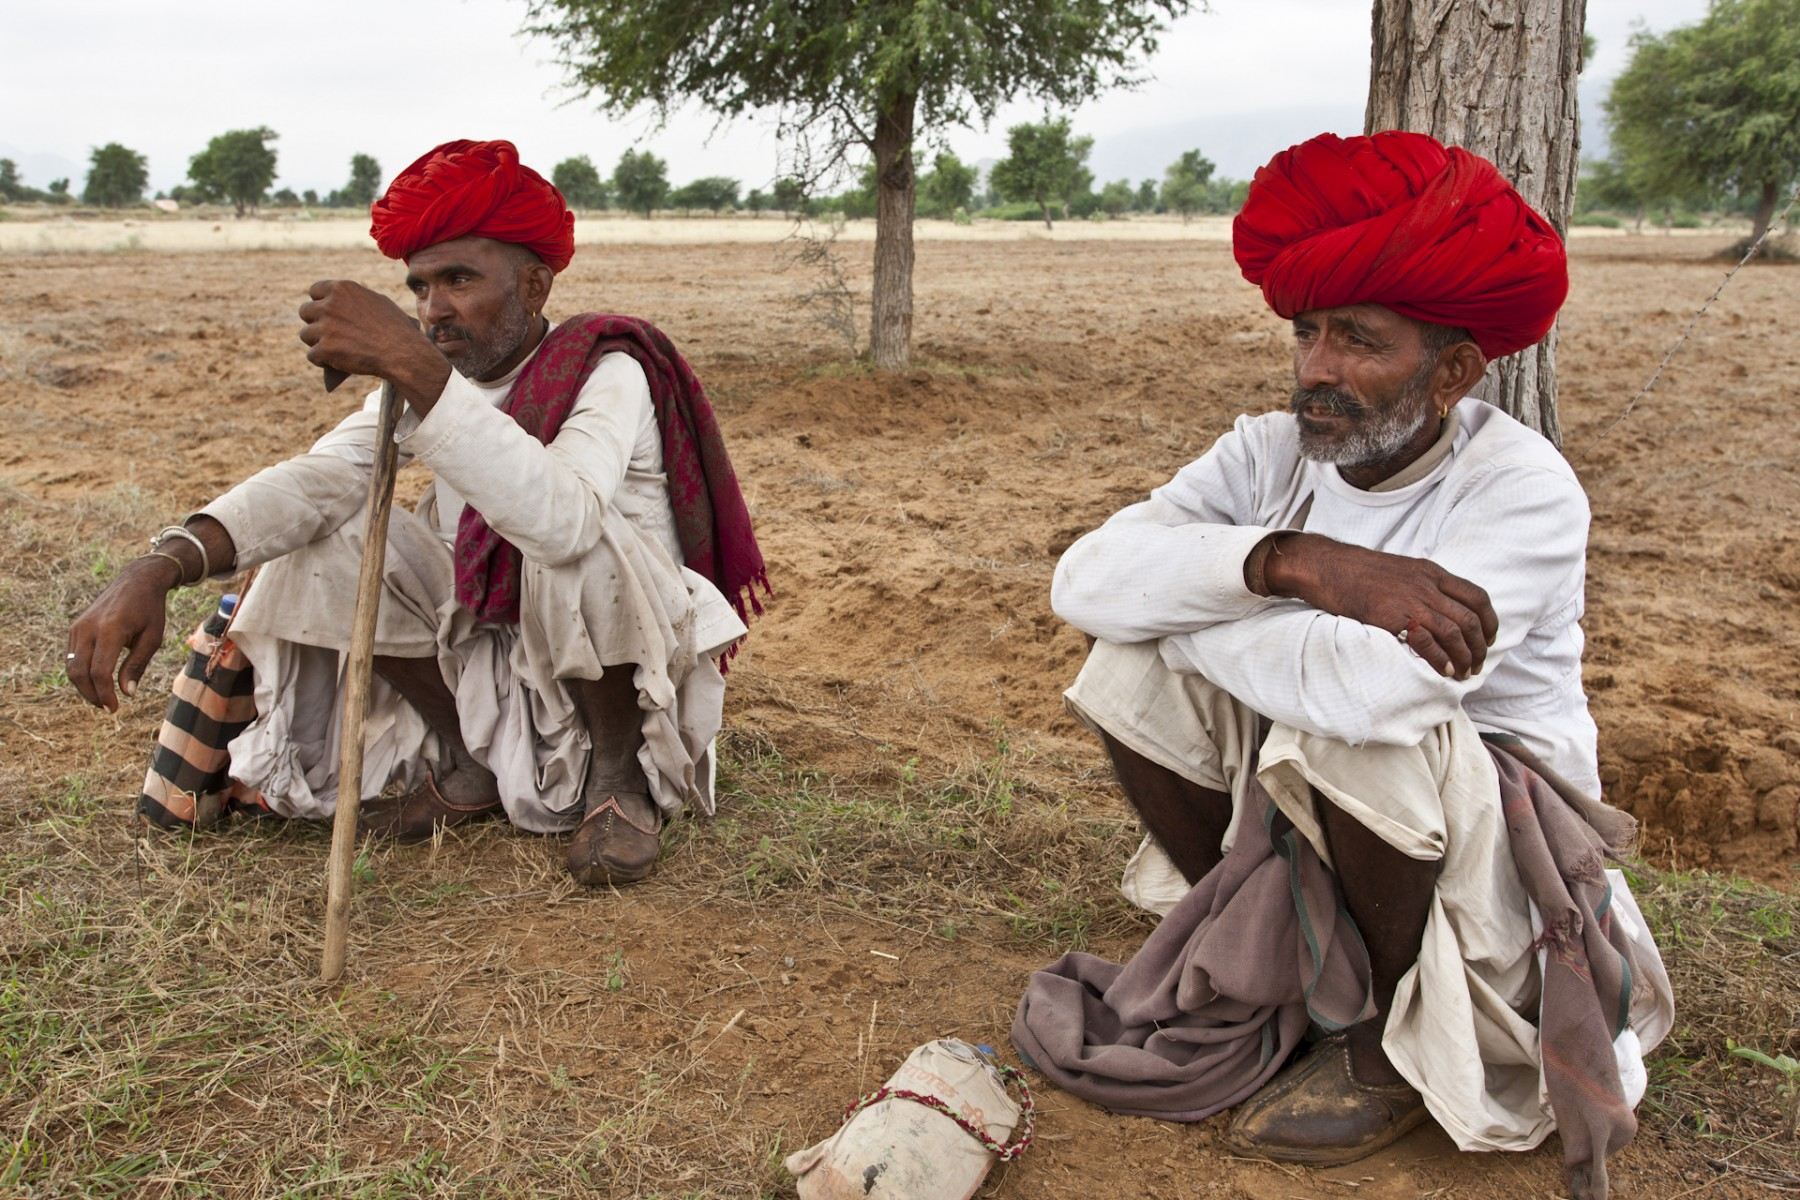 Shepherda take a break, Rajasthan